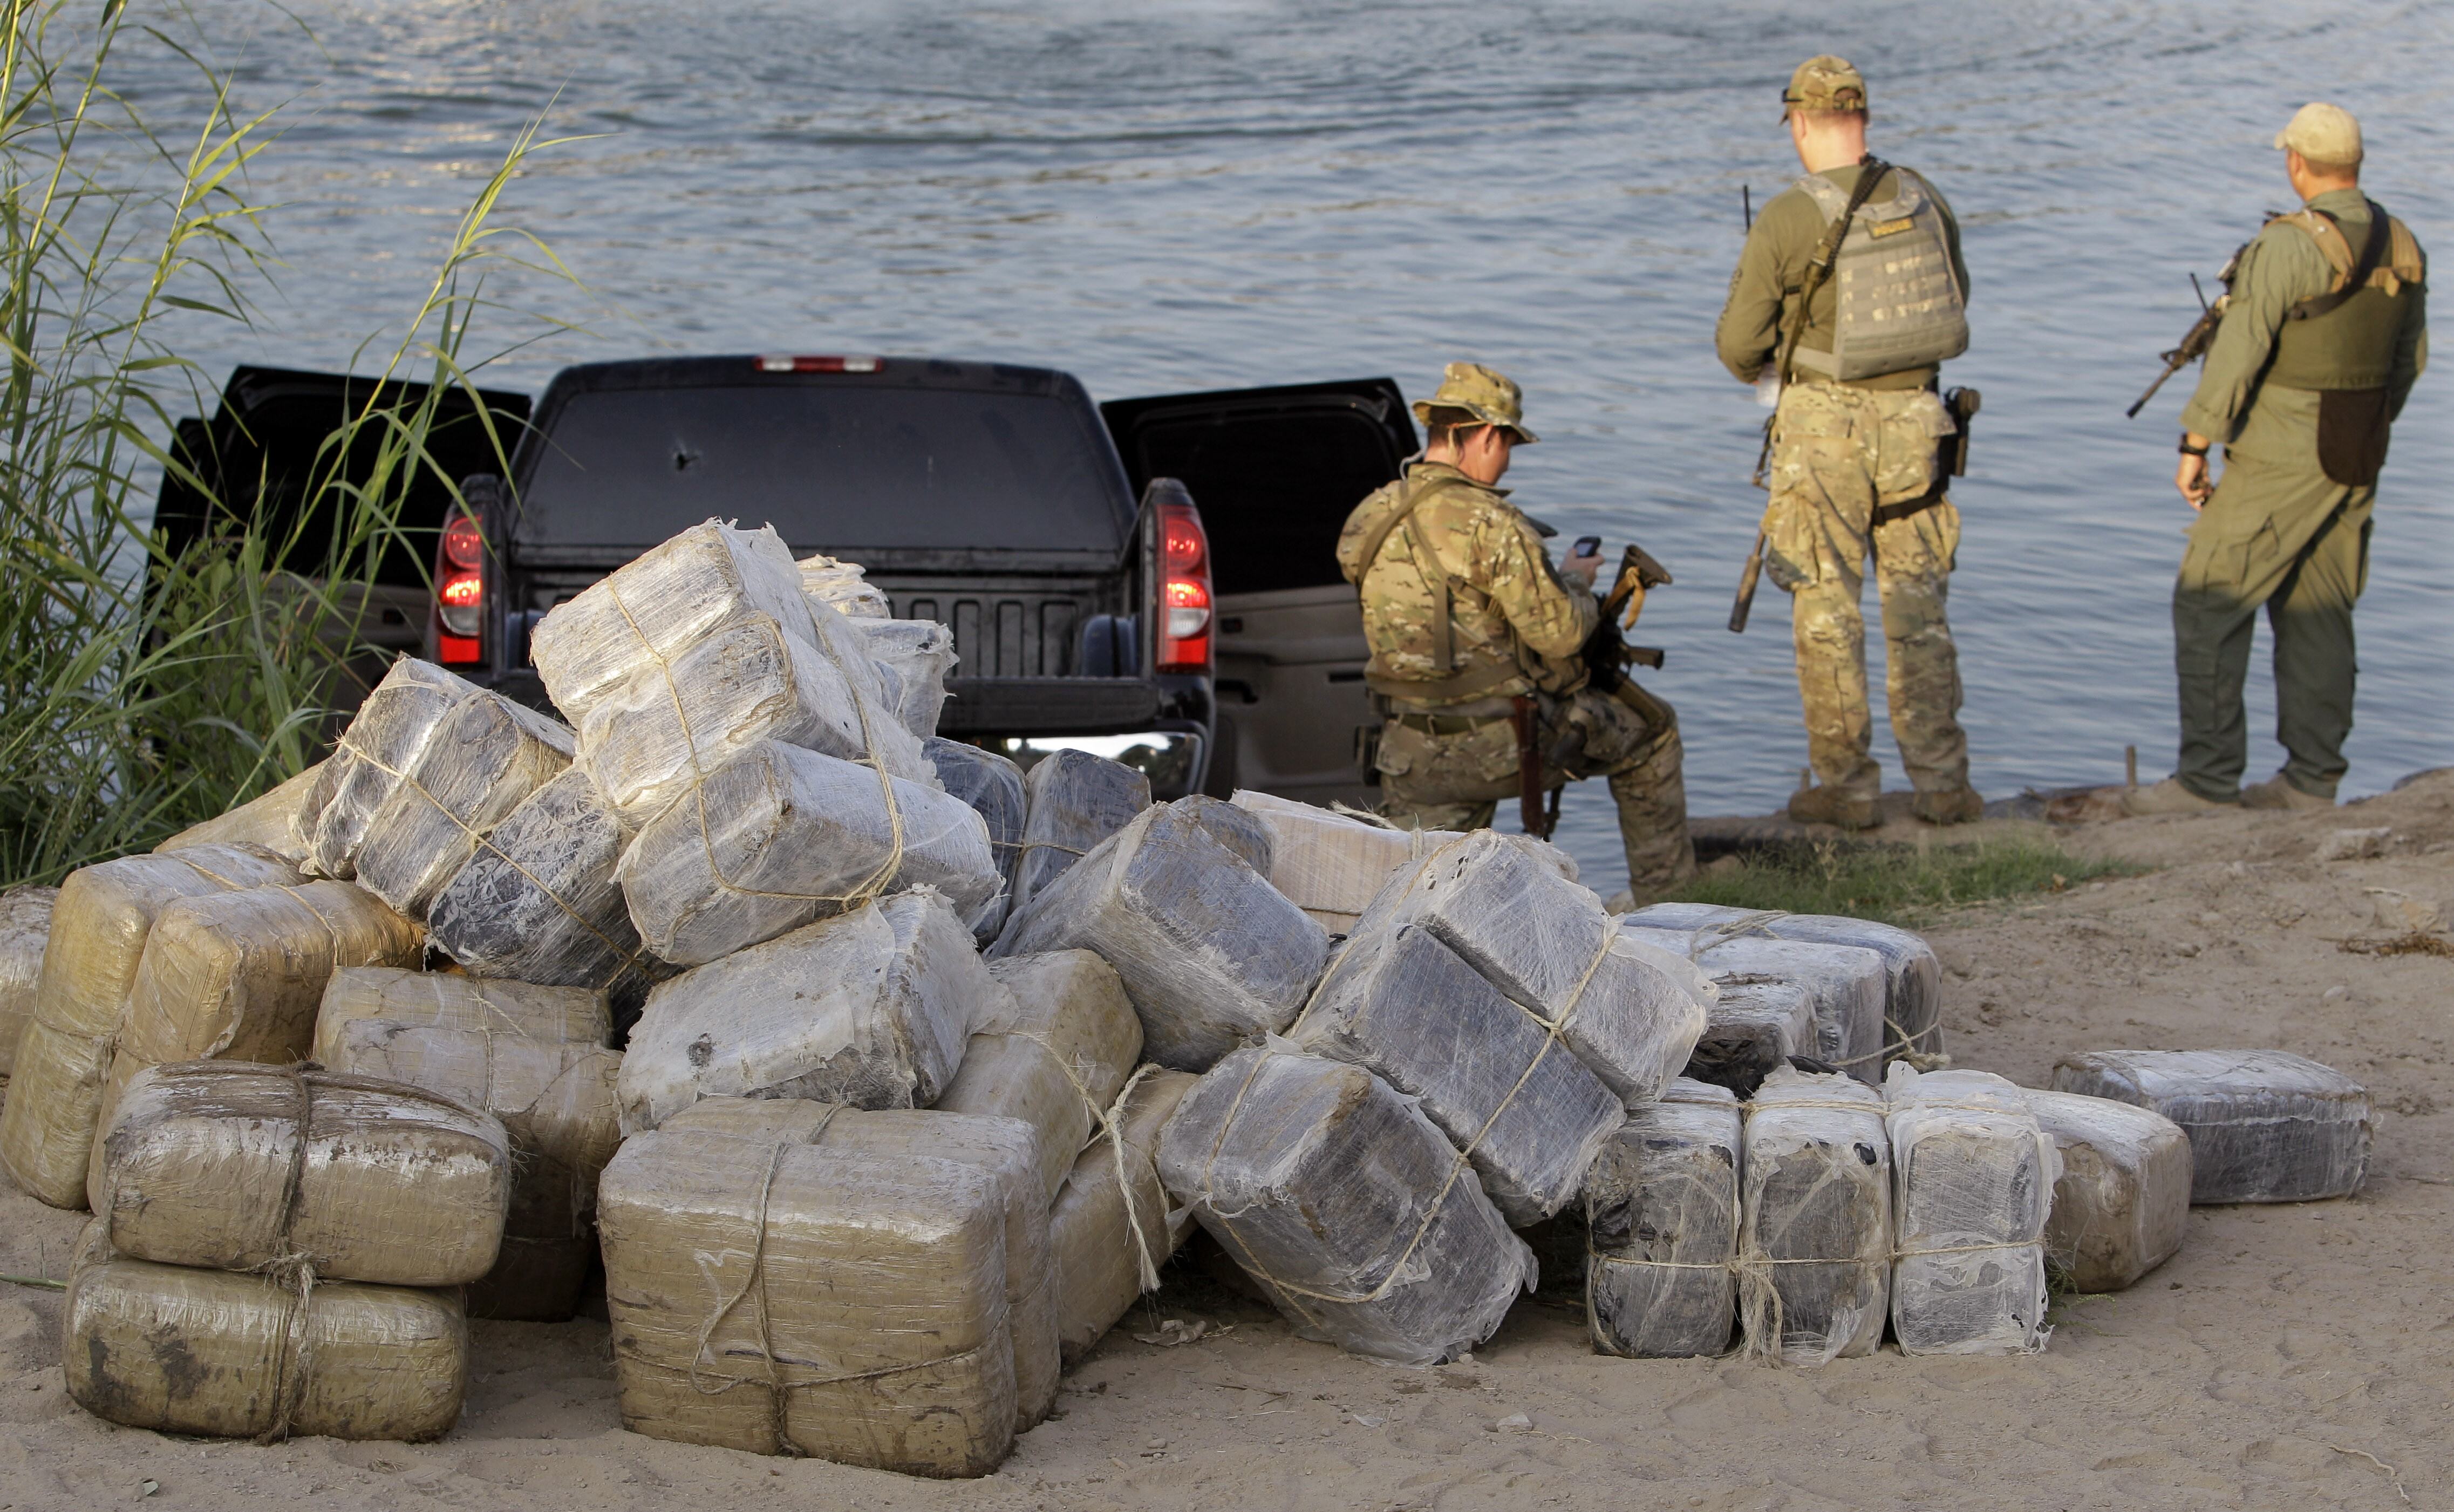 Report: Nearly all, 99 8%, of illegal drugs shipped to U S